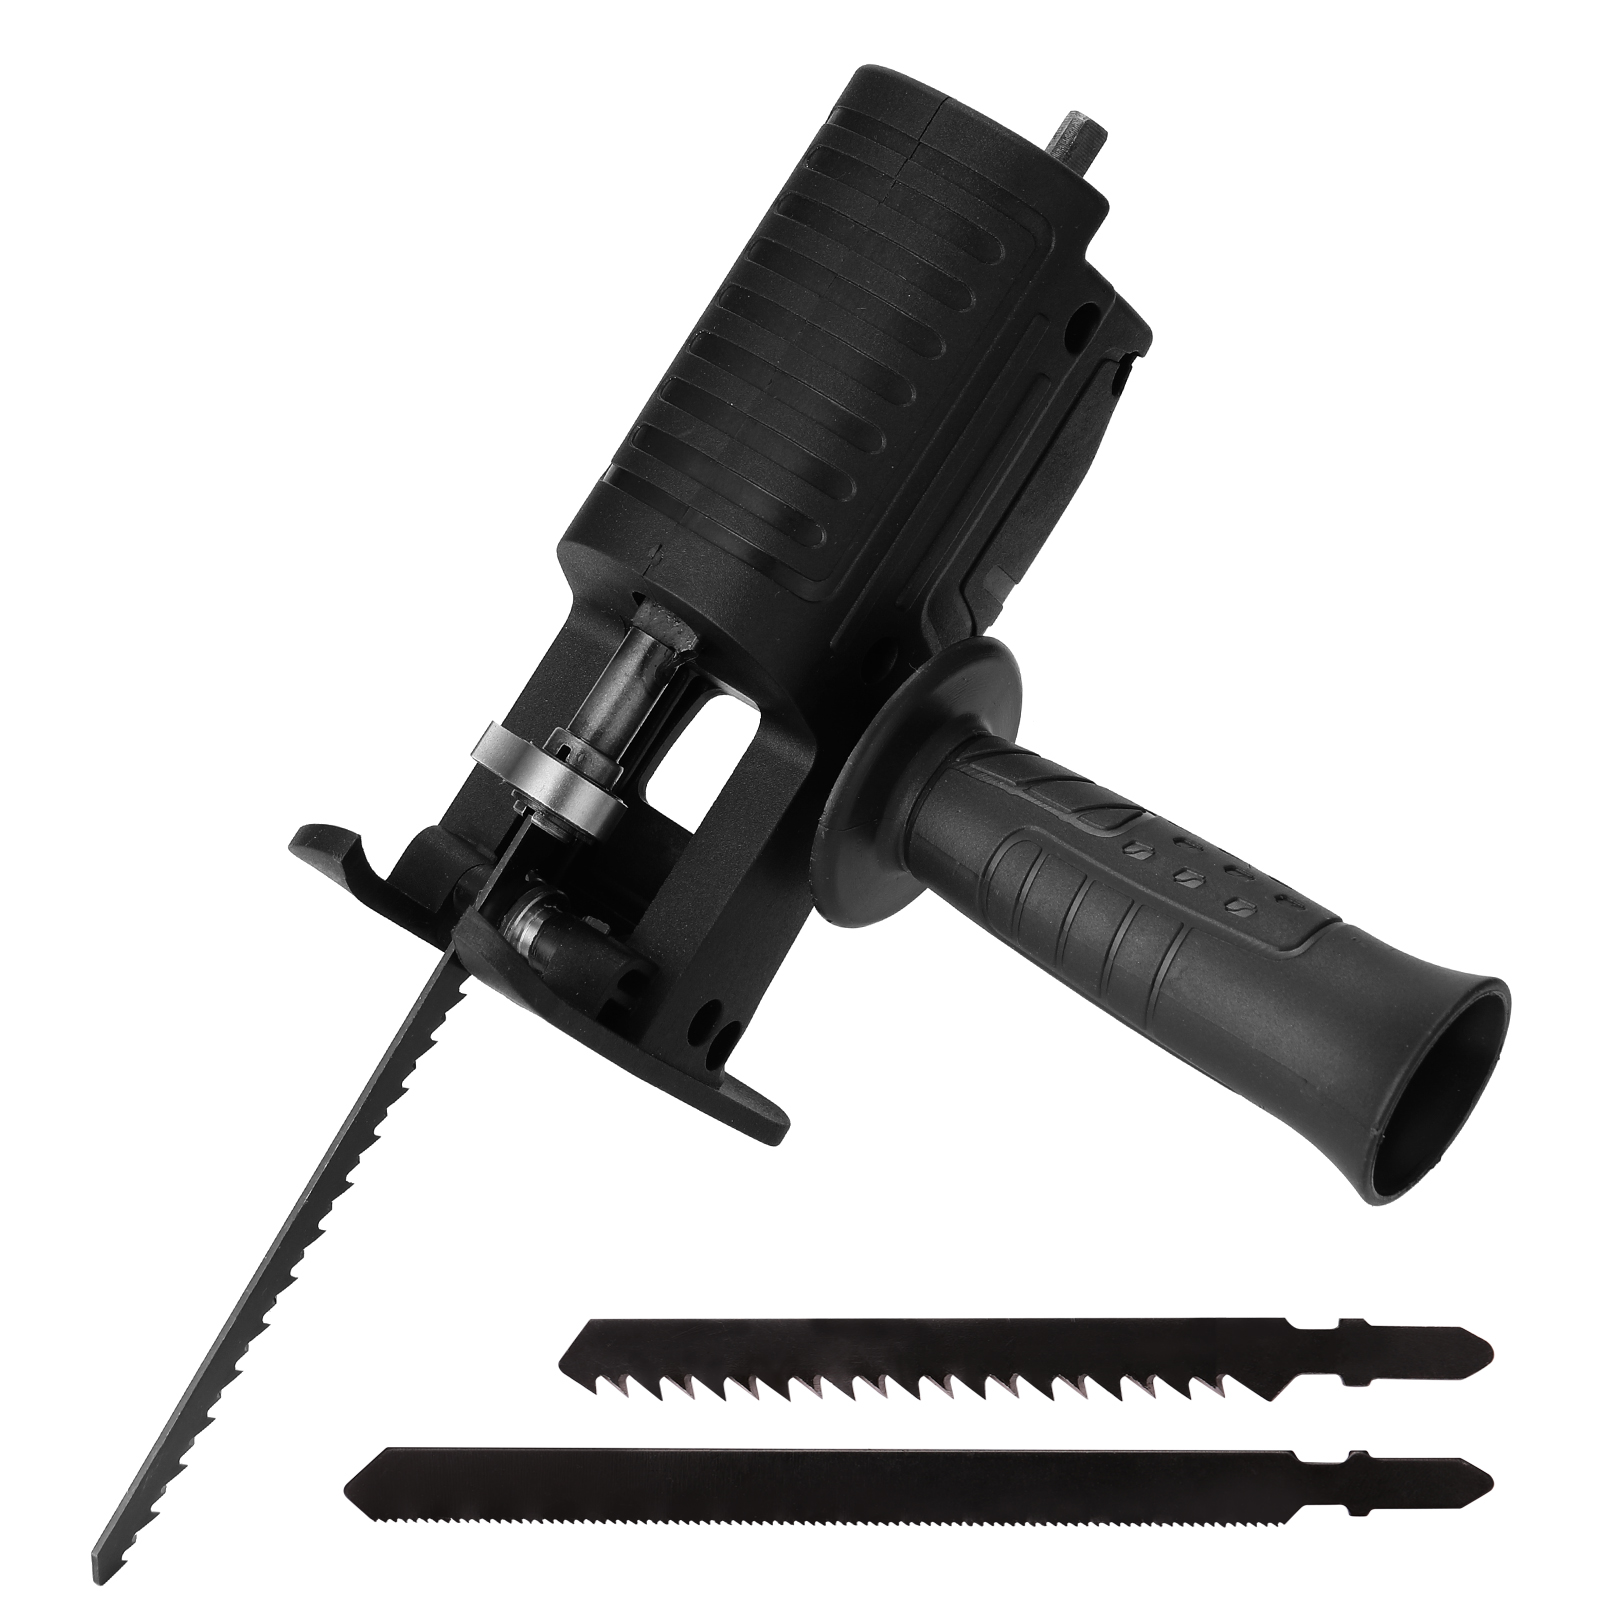 Electric Drill Modified Electric Saws Electric Reciprocating Saws Household Saber Saws Woodworking Cutting Tool